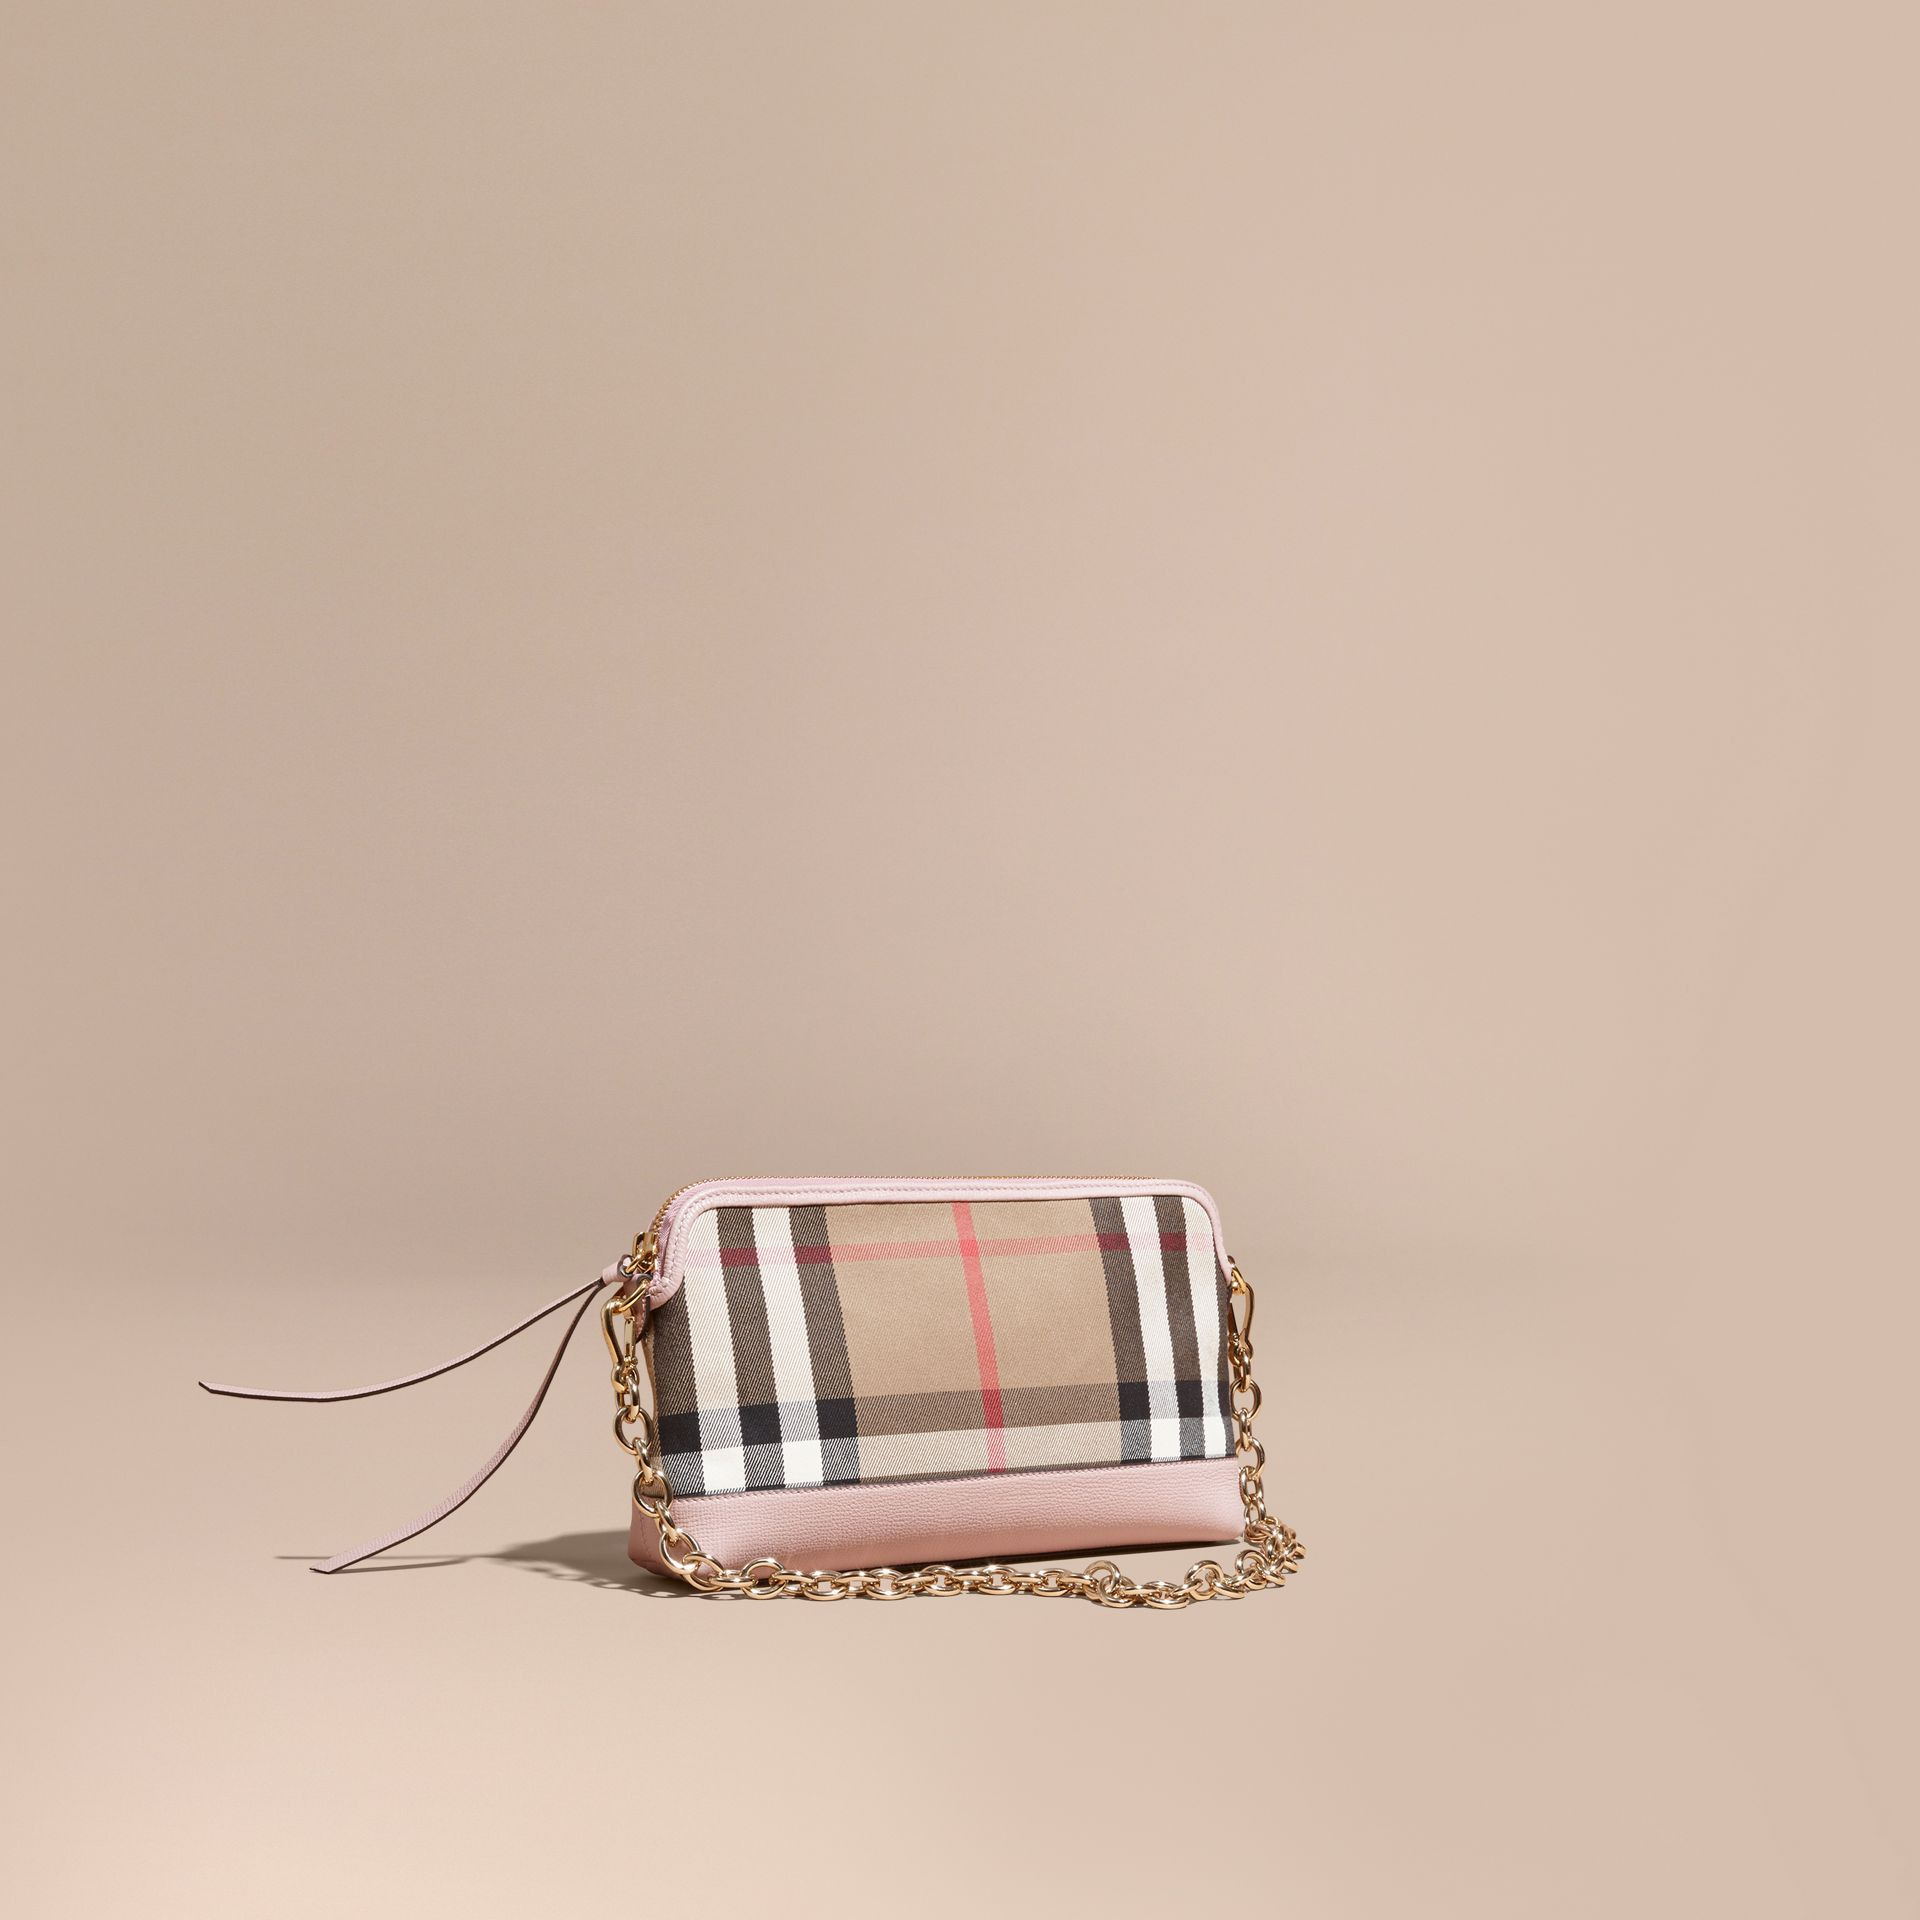 House Check and Leather Clutch Bag in Pale Orchid - Women | Burberry Australia - gallery image 1